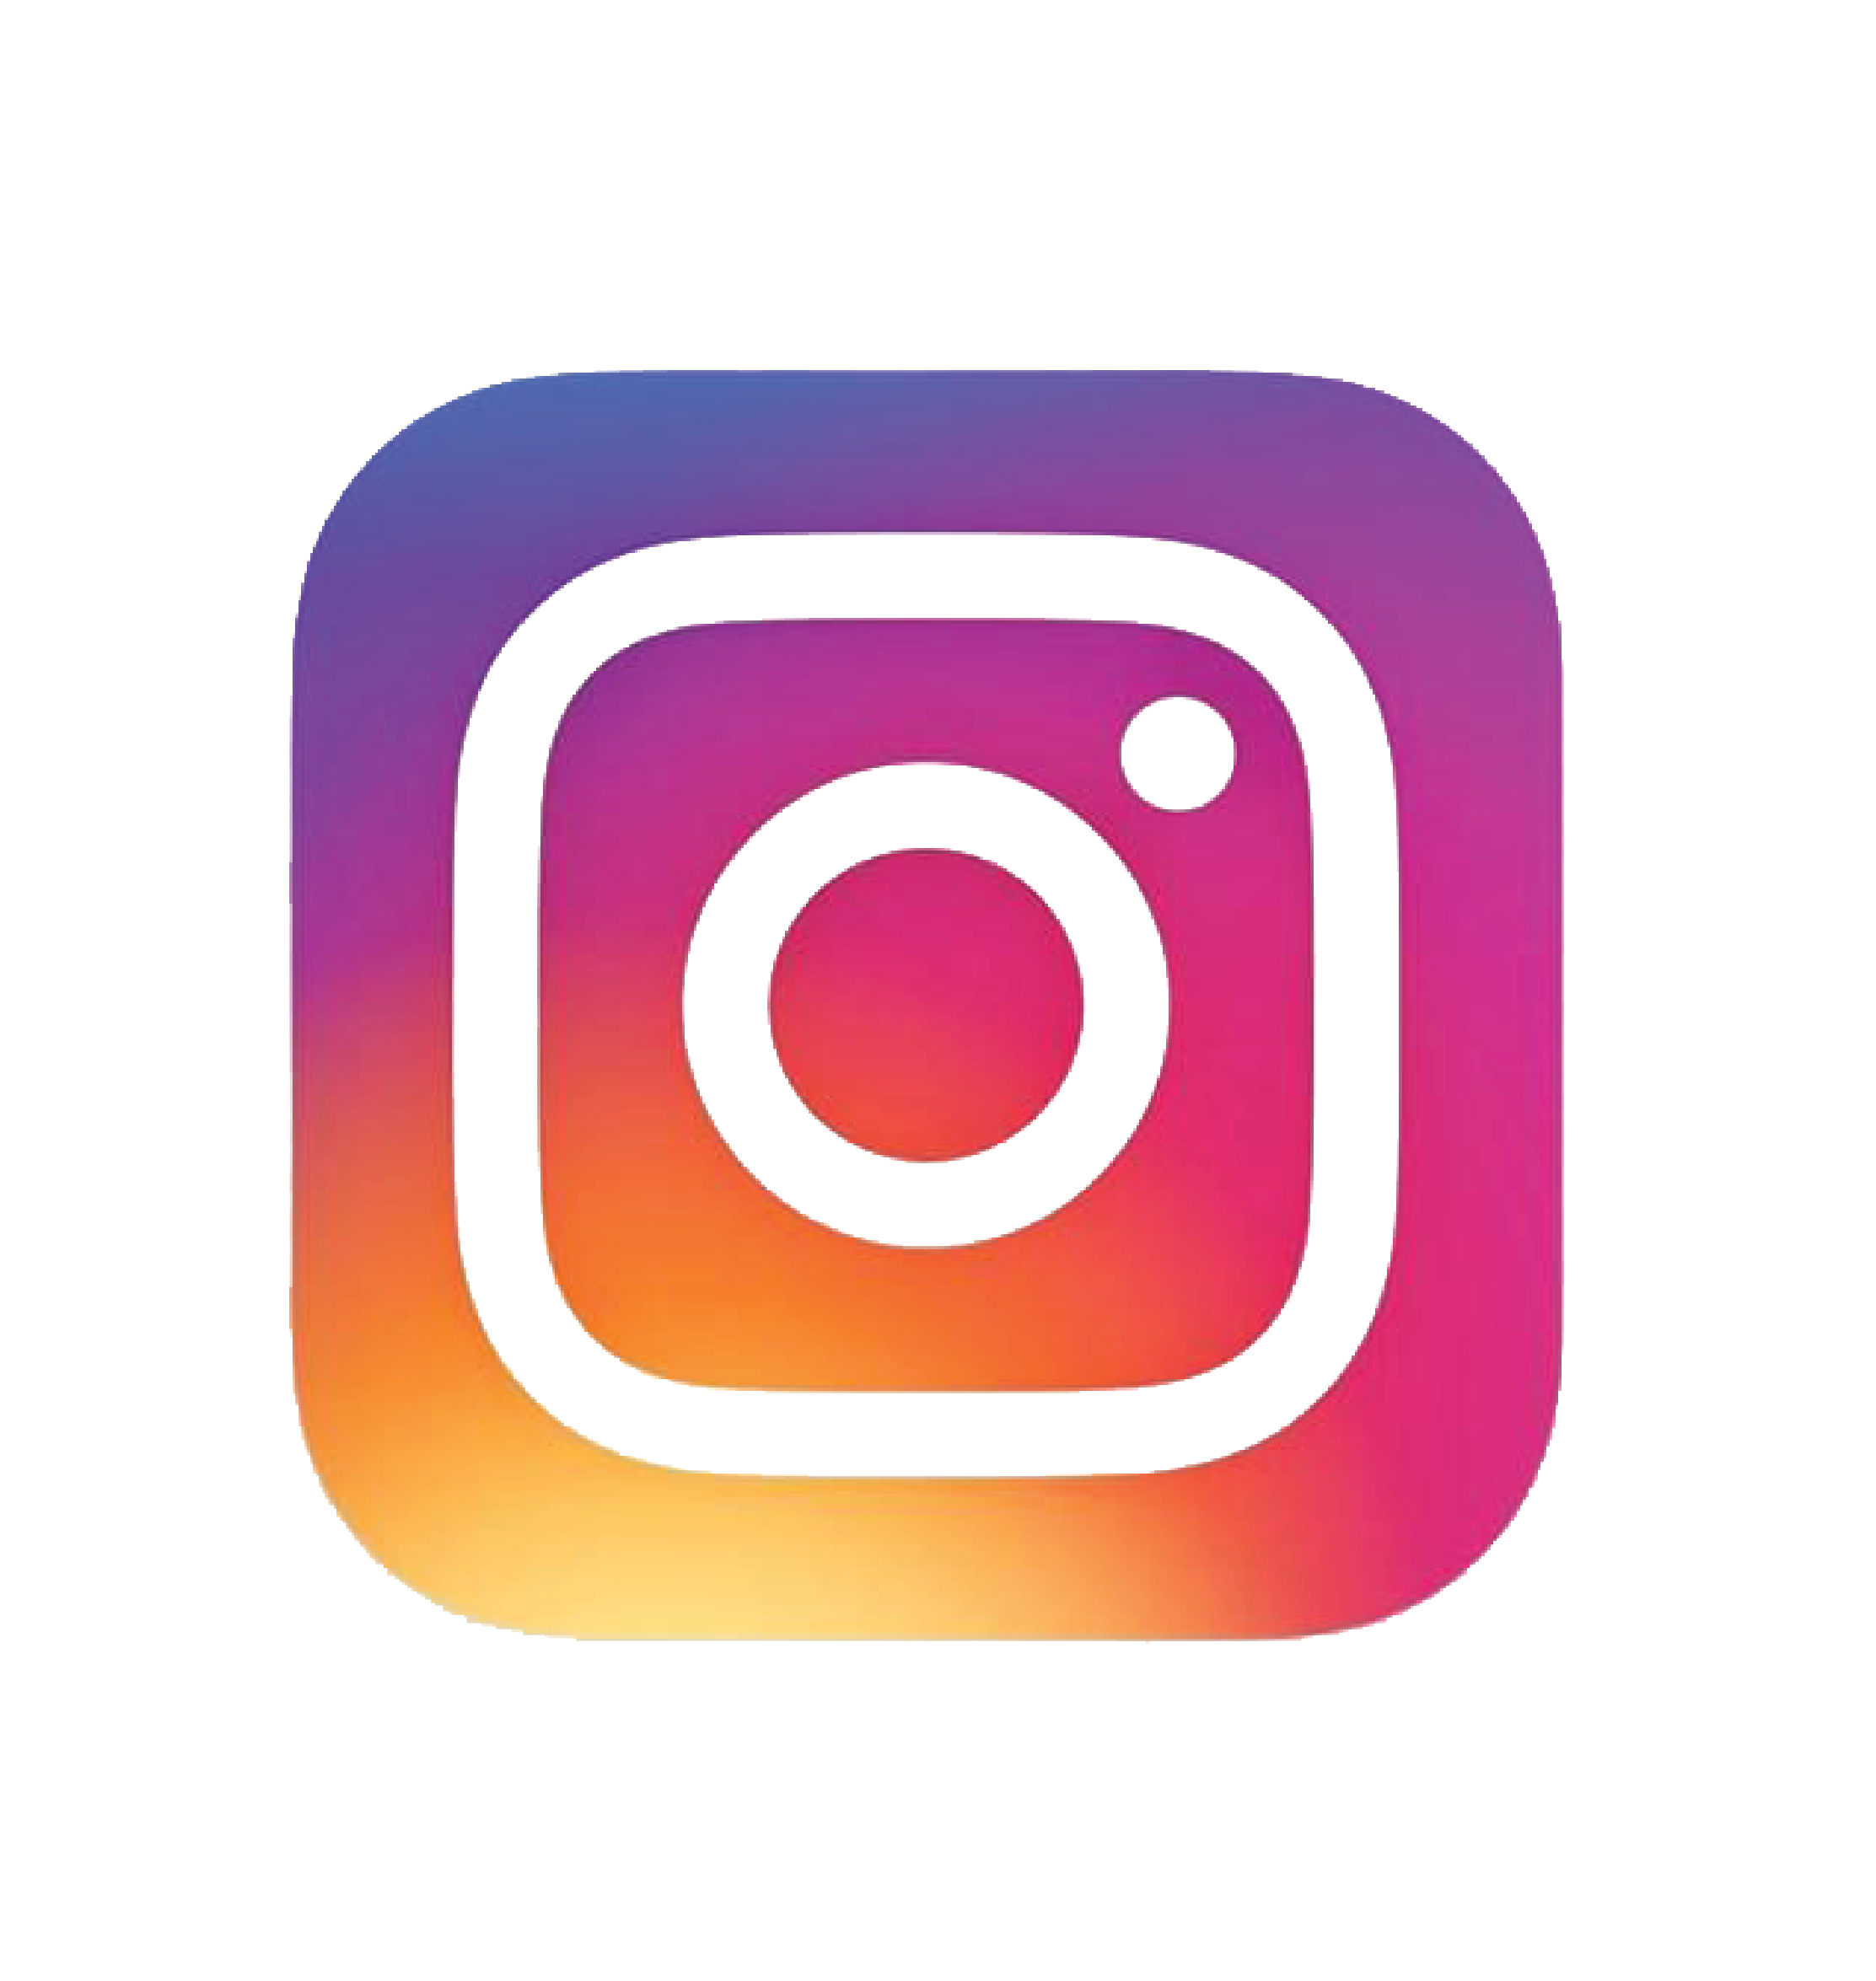 Logo Vector Instagram Graphics Free HQ Image PNG Image